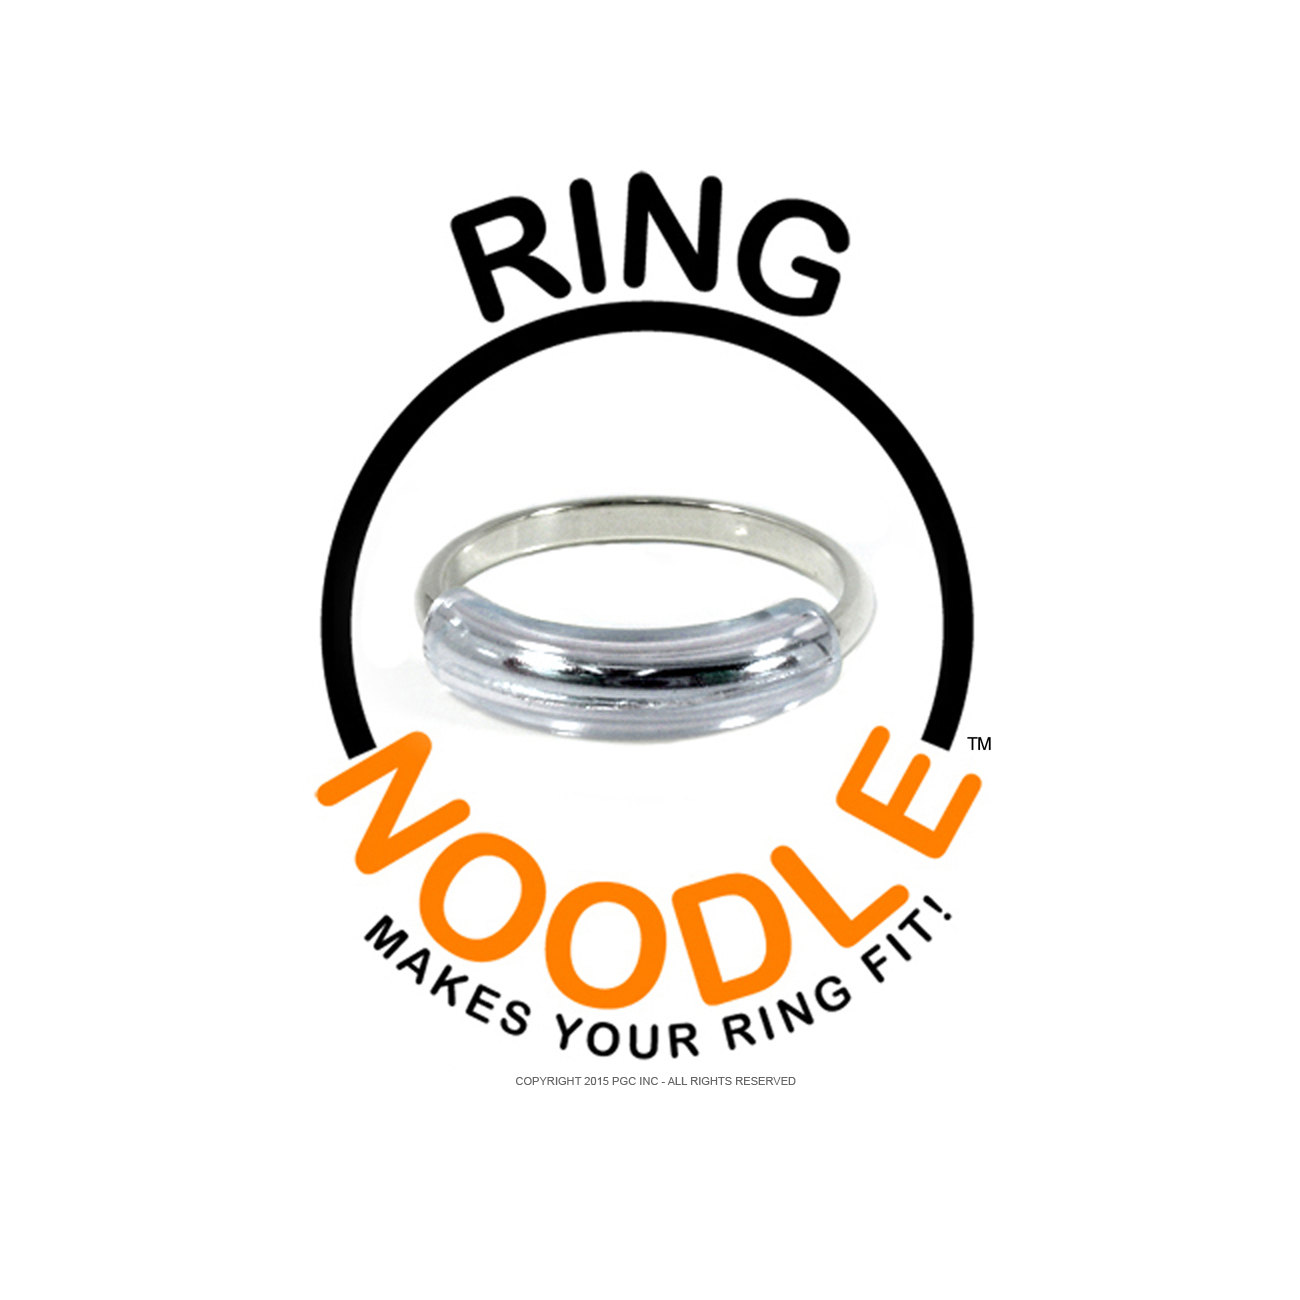 RING NOODLE coupon codes